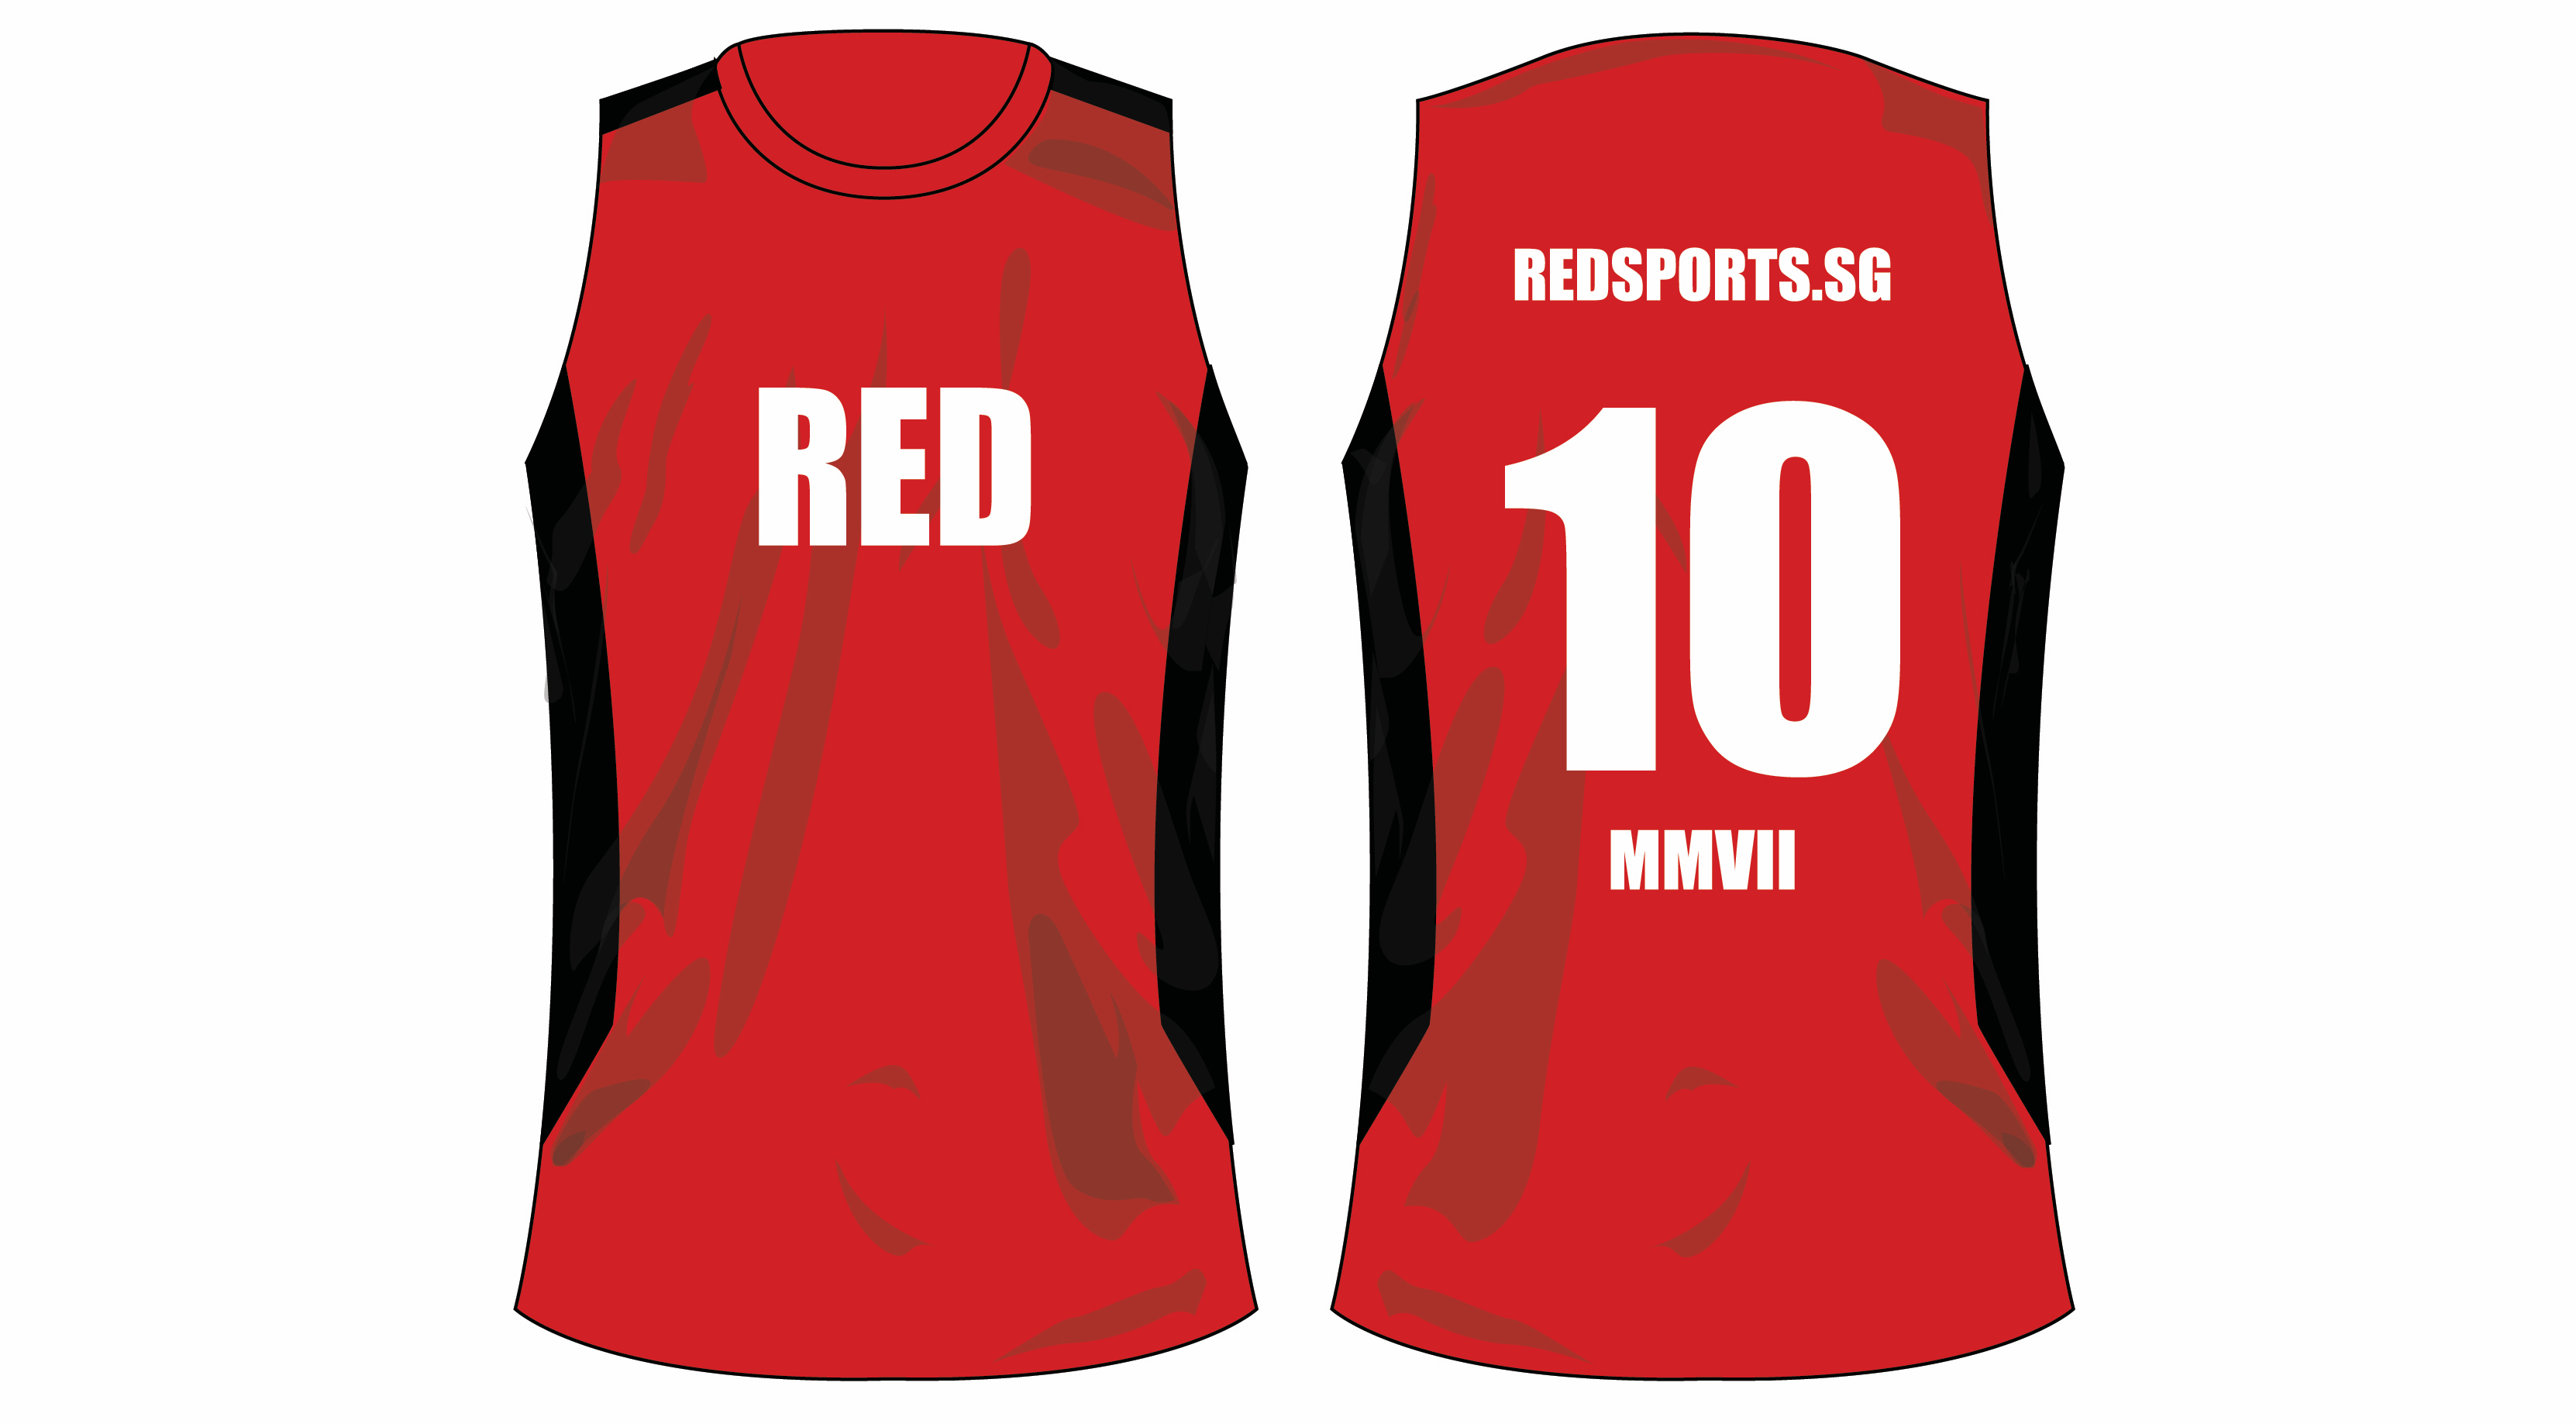 To celebrate our 10th anniversary, we are producing this RED10 tank top in limited quantities.